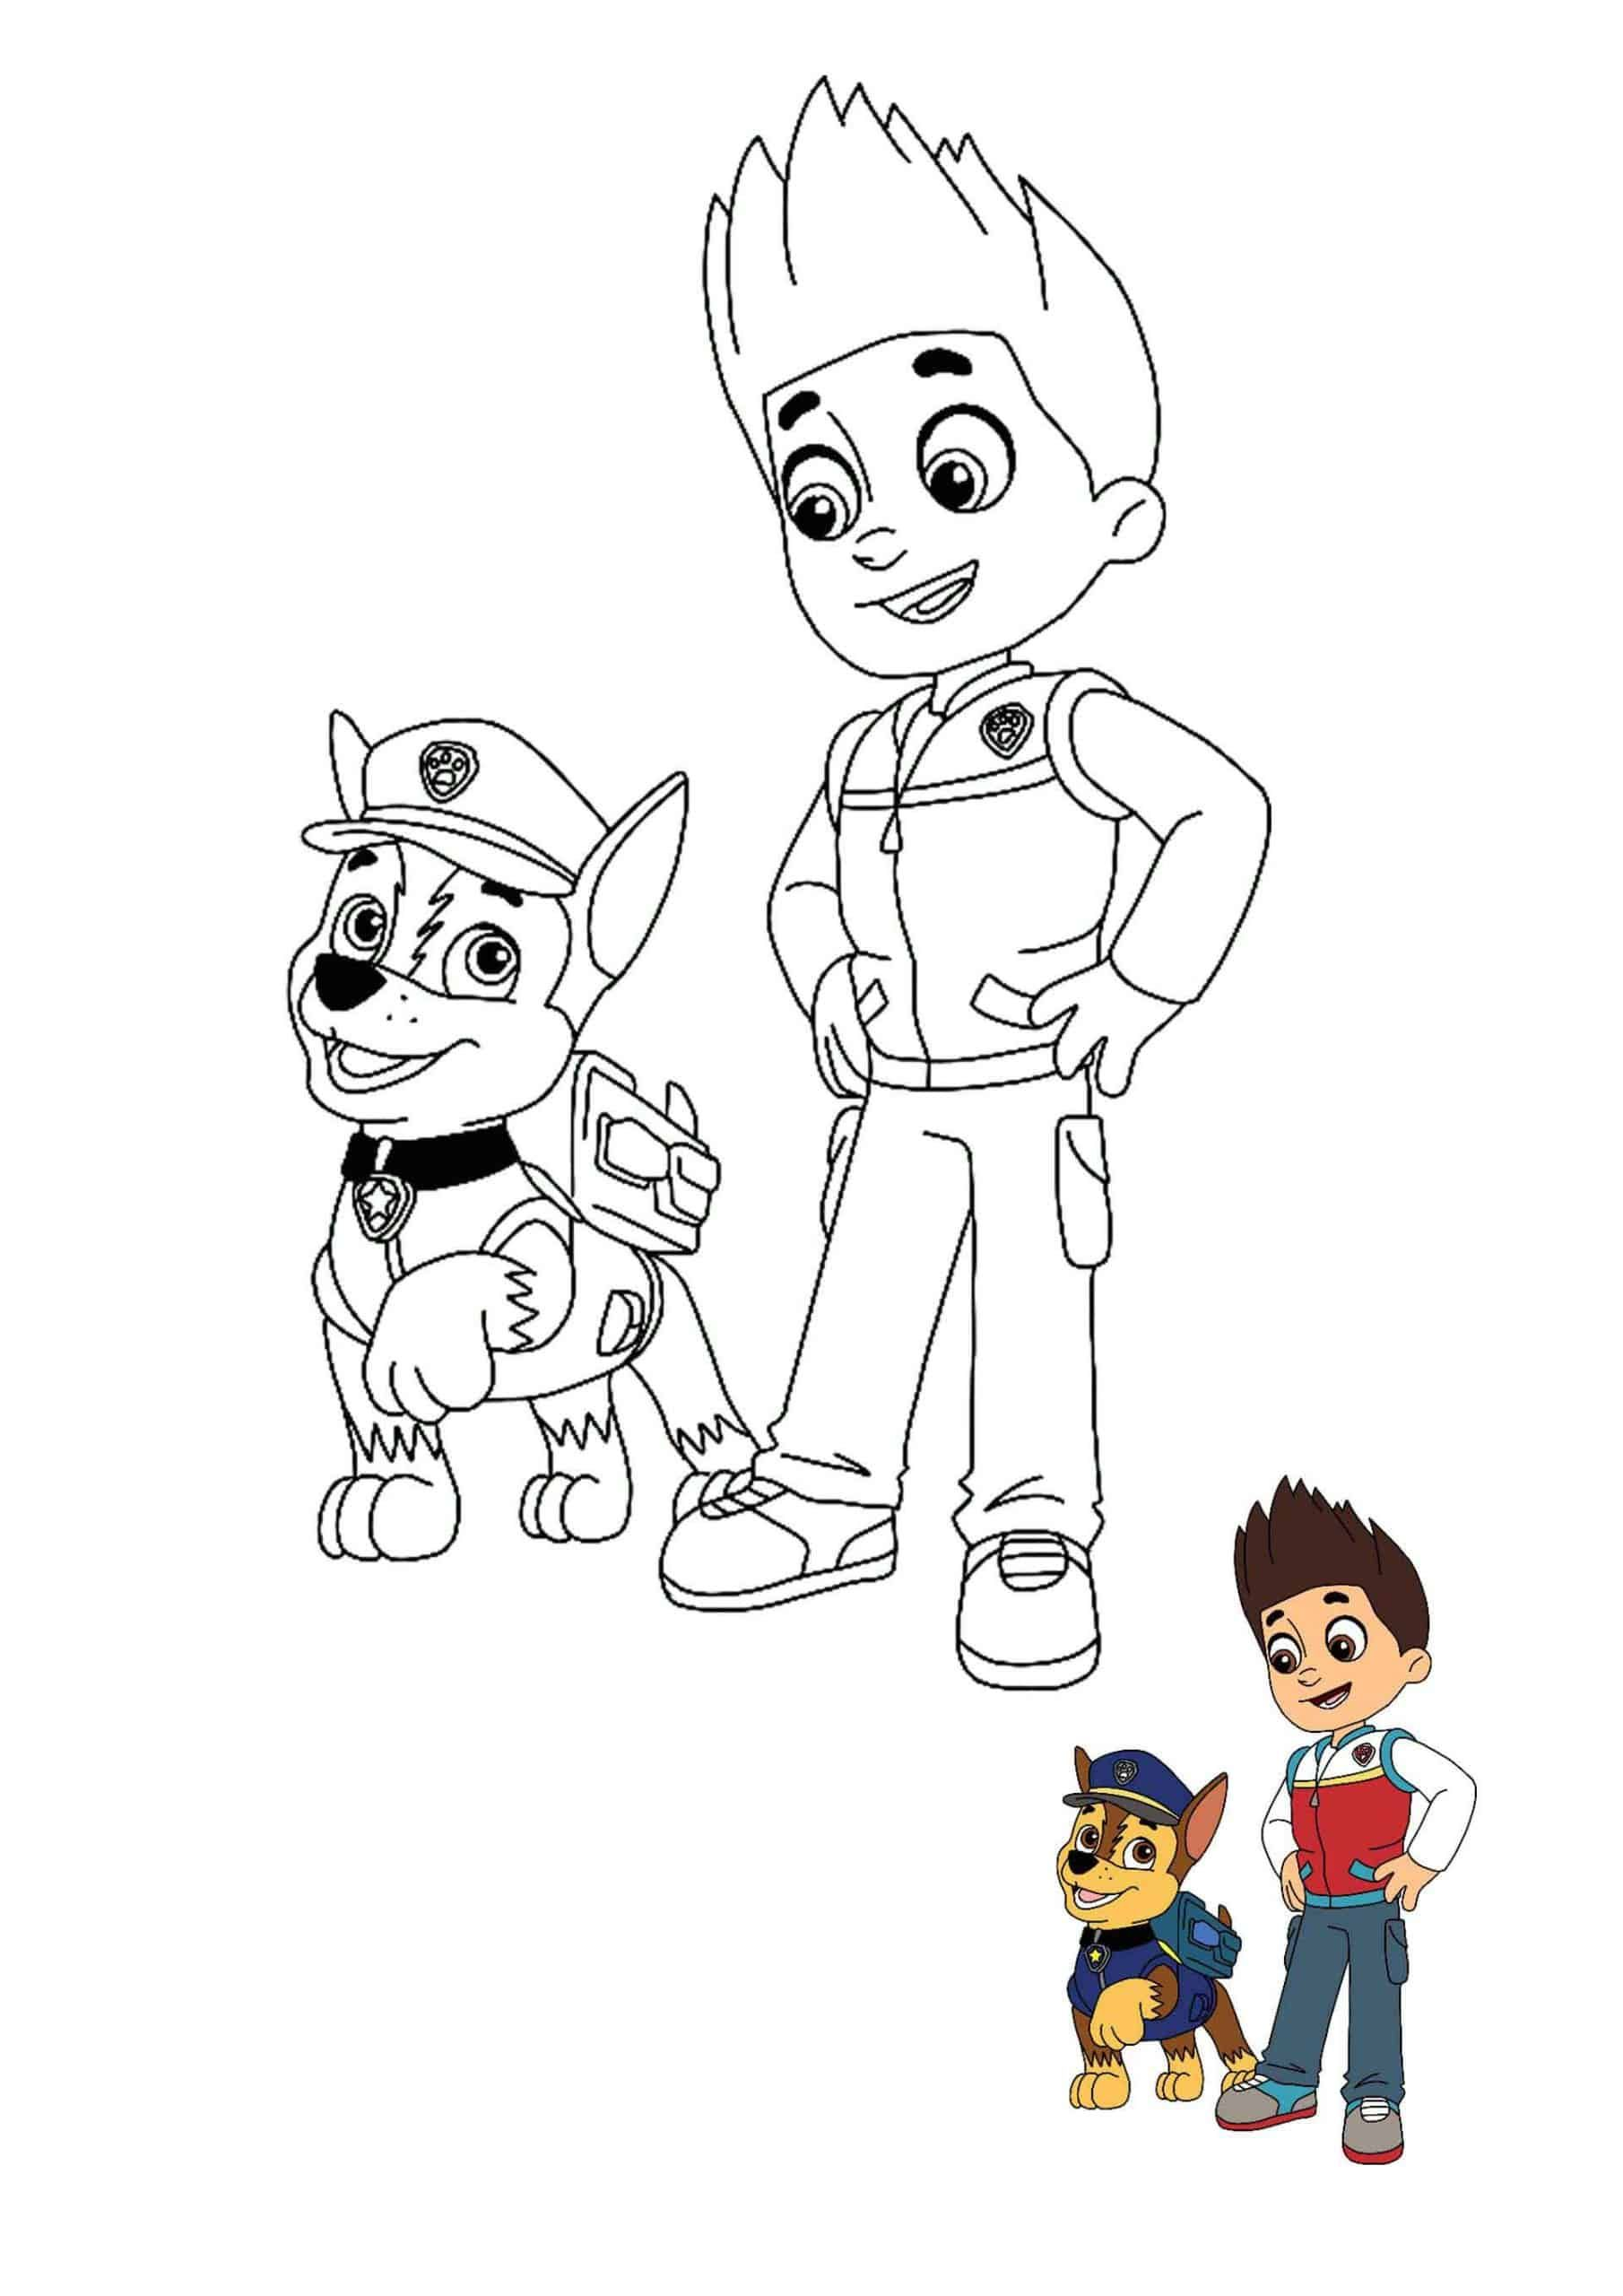 Paw Patrol Ryder And Chase Coloring Sheet Unicorn Coloring Pages Paw Patrol Coloring Pages Paw Patrol Coloring